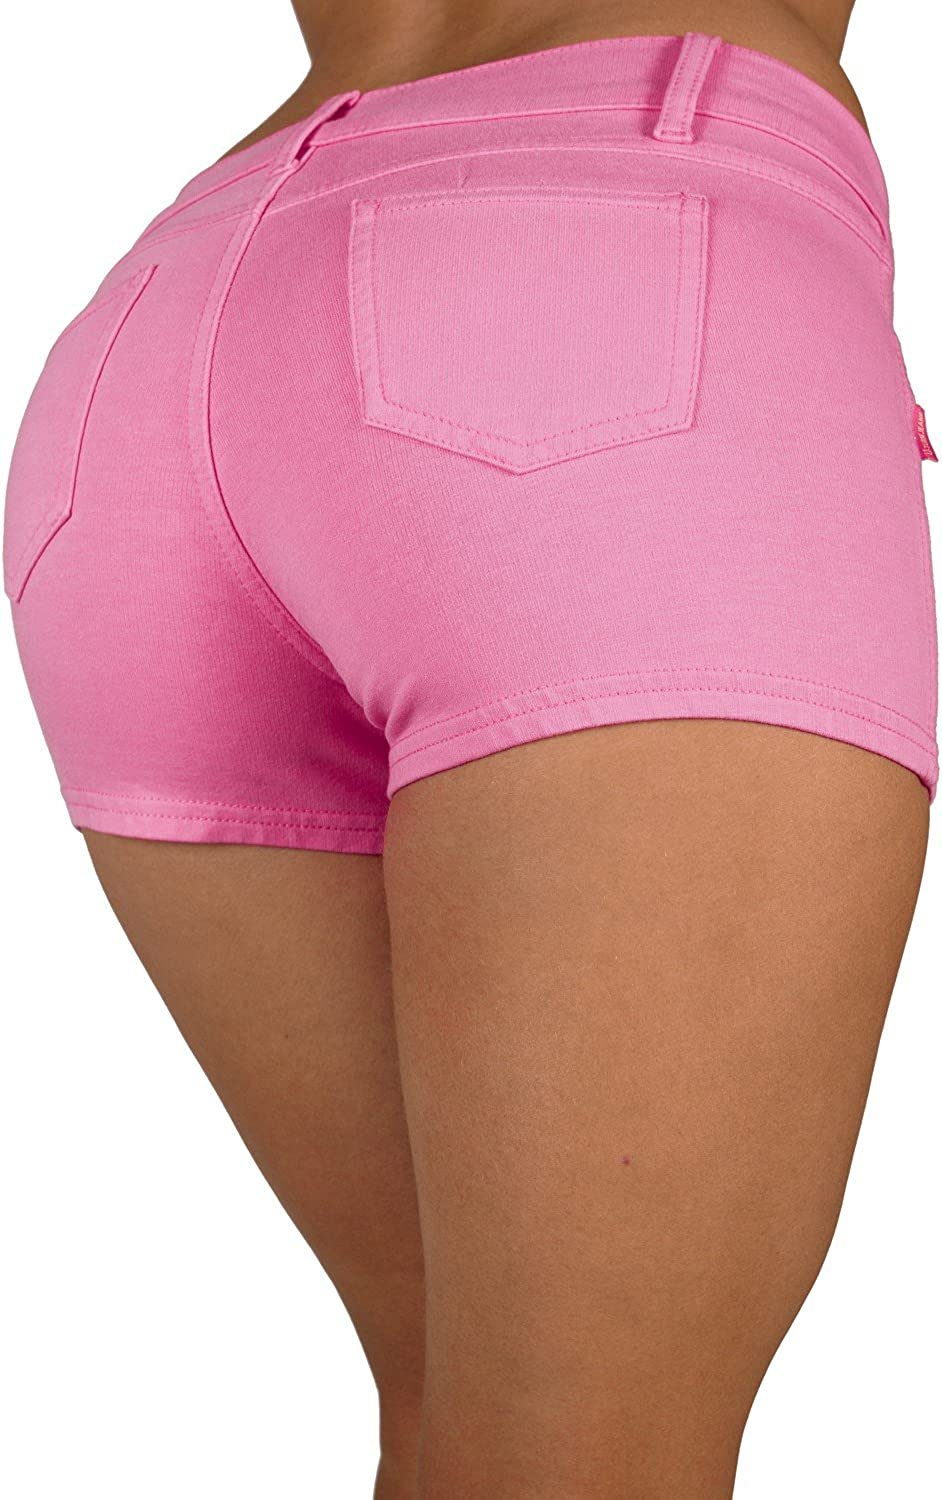 Basic Booty Shorts Premium Stretch French Terry with Gentle Butt Lift Stitching